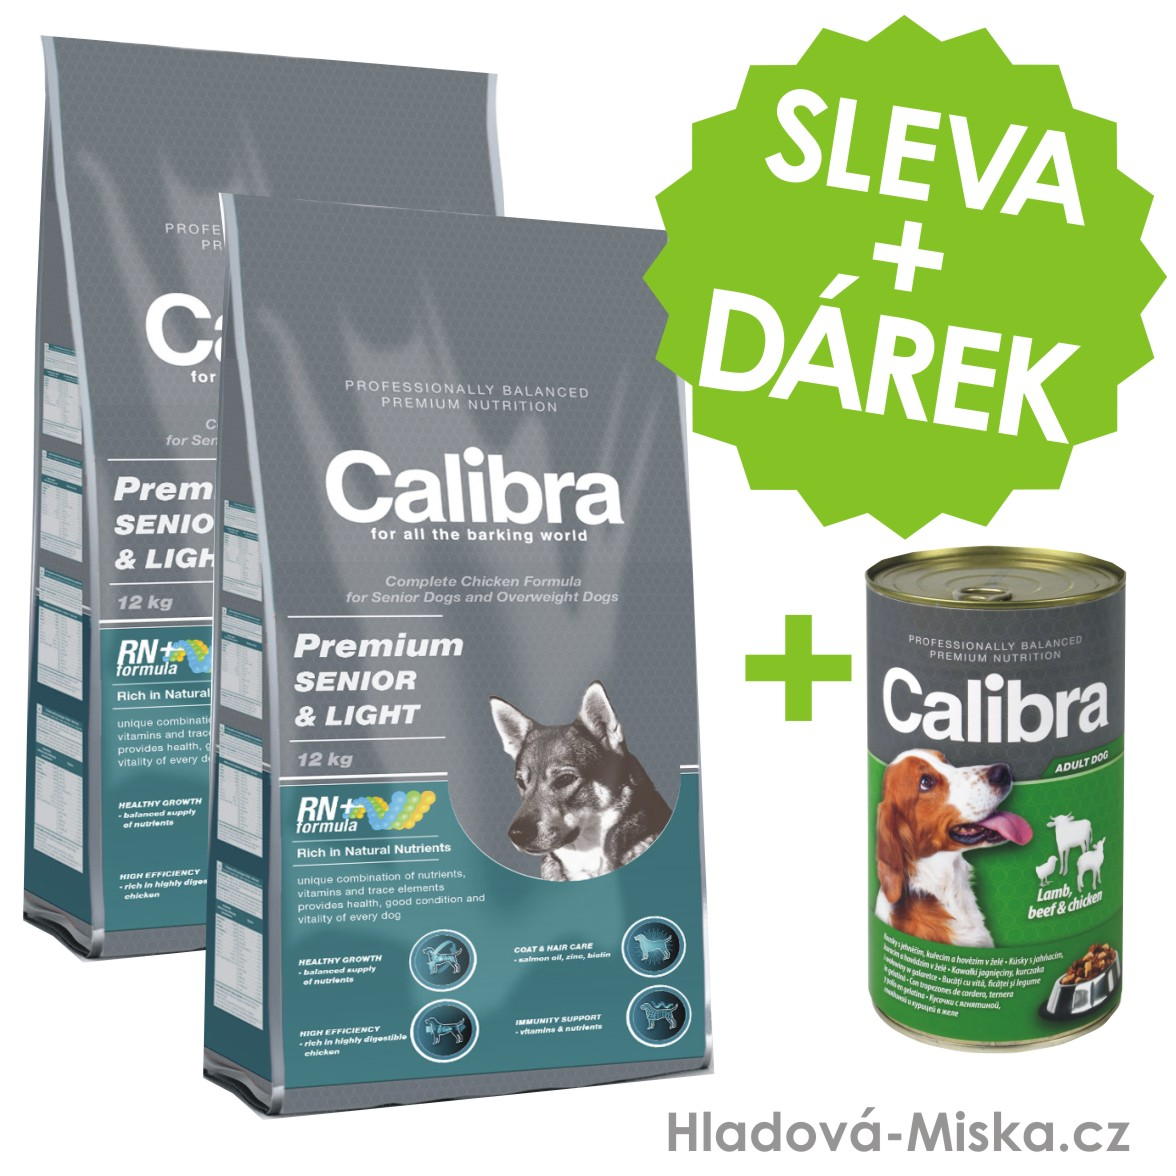 Calibra dog Premium SENIOR & LIGHT 2x12 kg + ZDARMA konzerva Calibra!